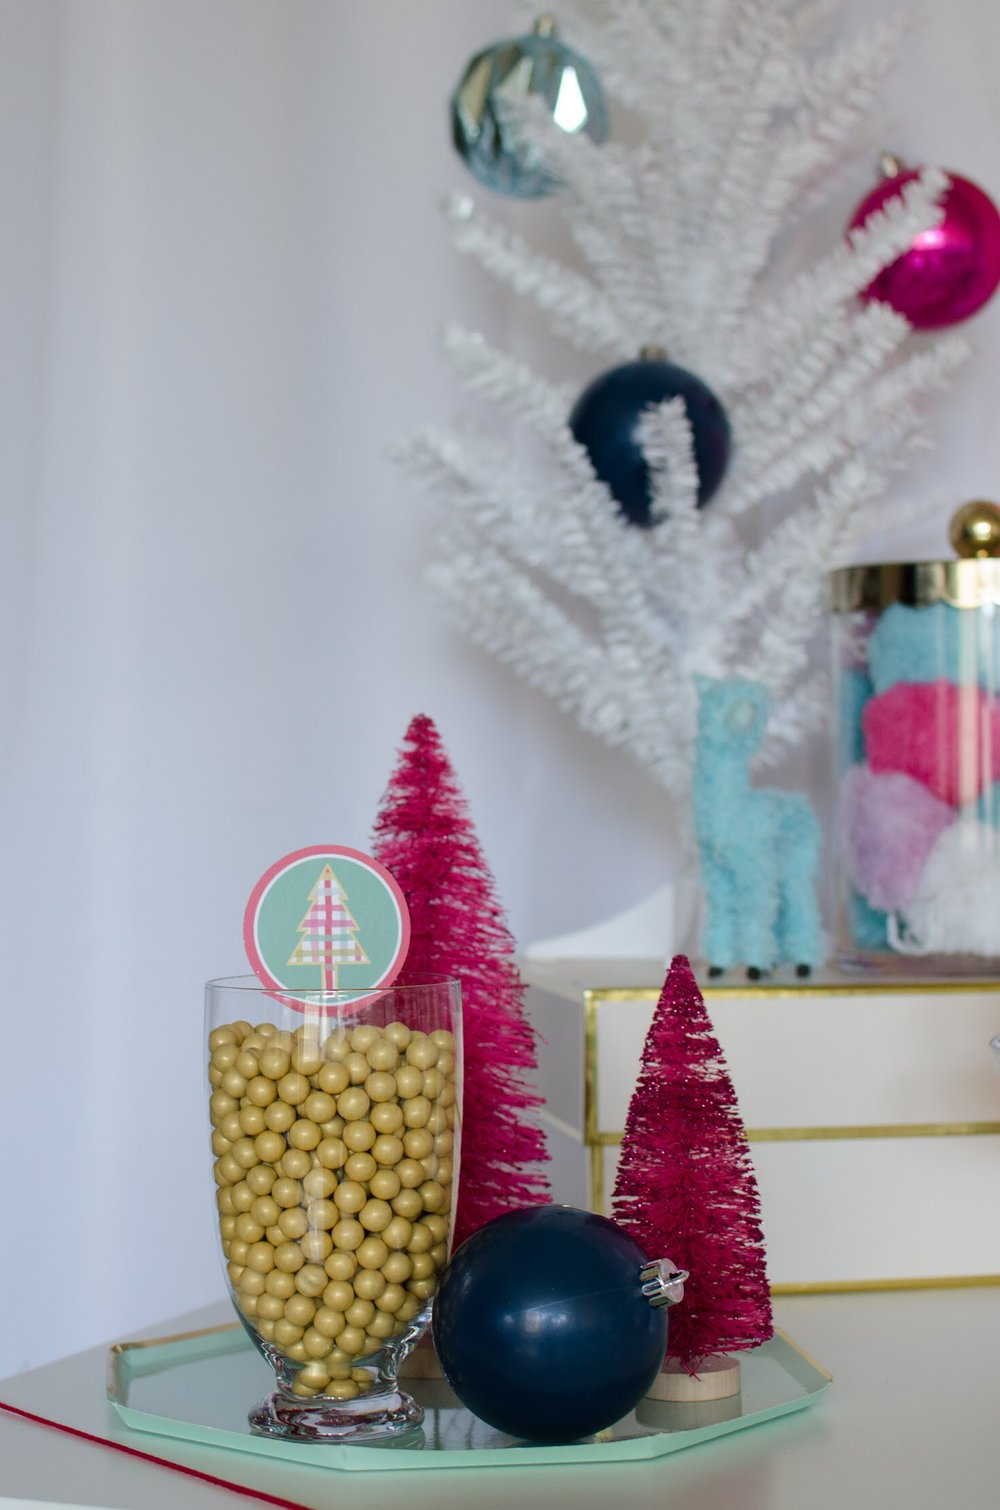 Adding candy in glass jars dresses up the sweets table at this fa la la la llama holiday party from Mint Event Design. See more from this llama Christmas party at www.minteventdesign.com and download your free printables #holidayparty #partyideas #christmasparty #holidaypartyideas #llamaparty #llamalove